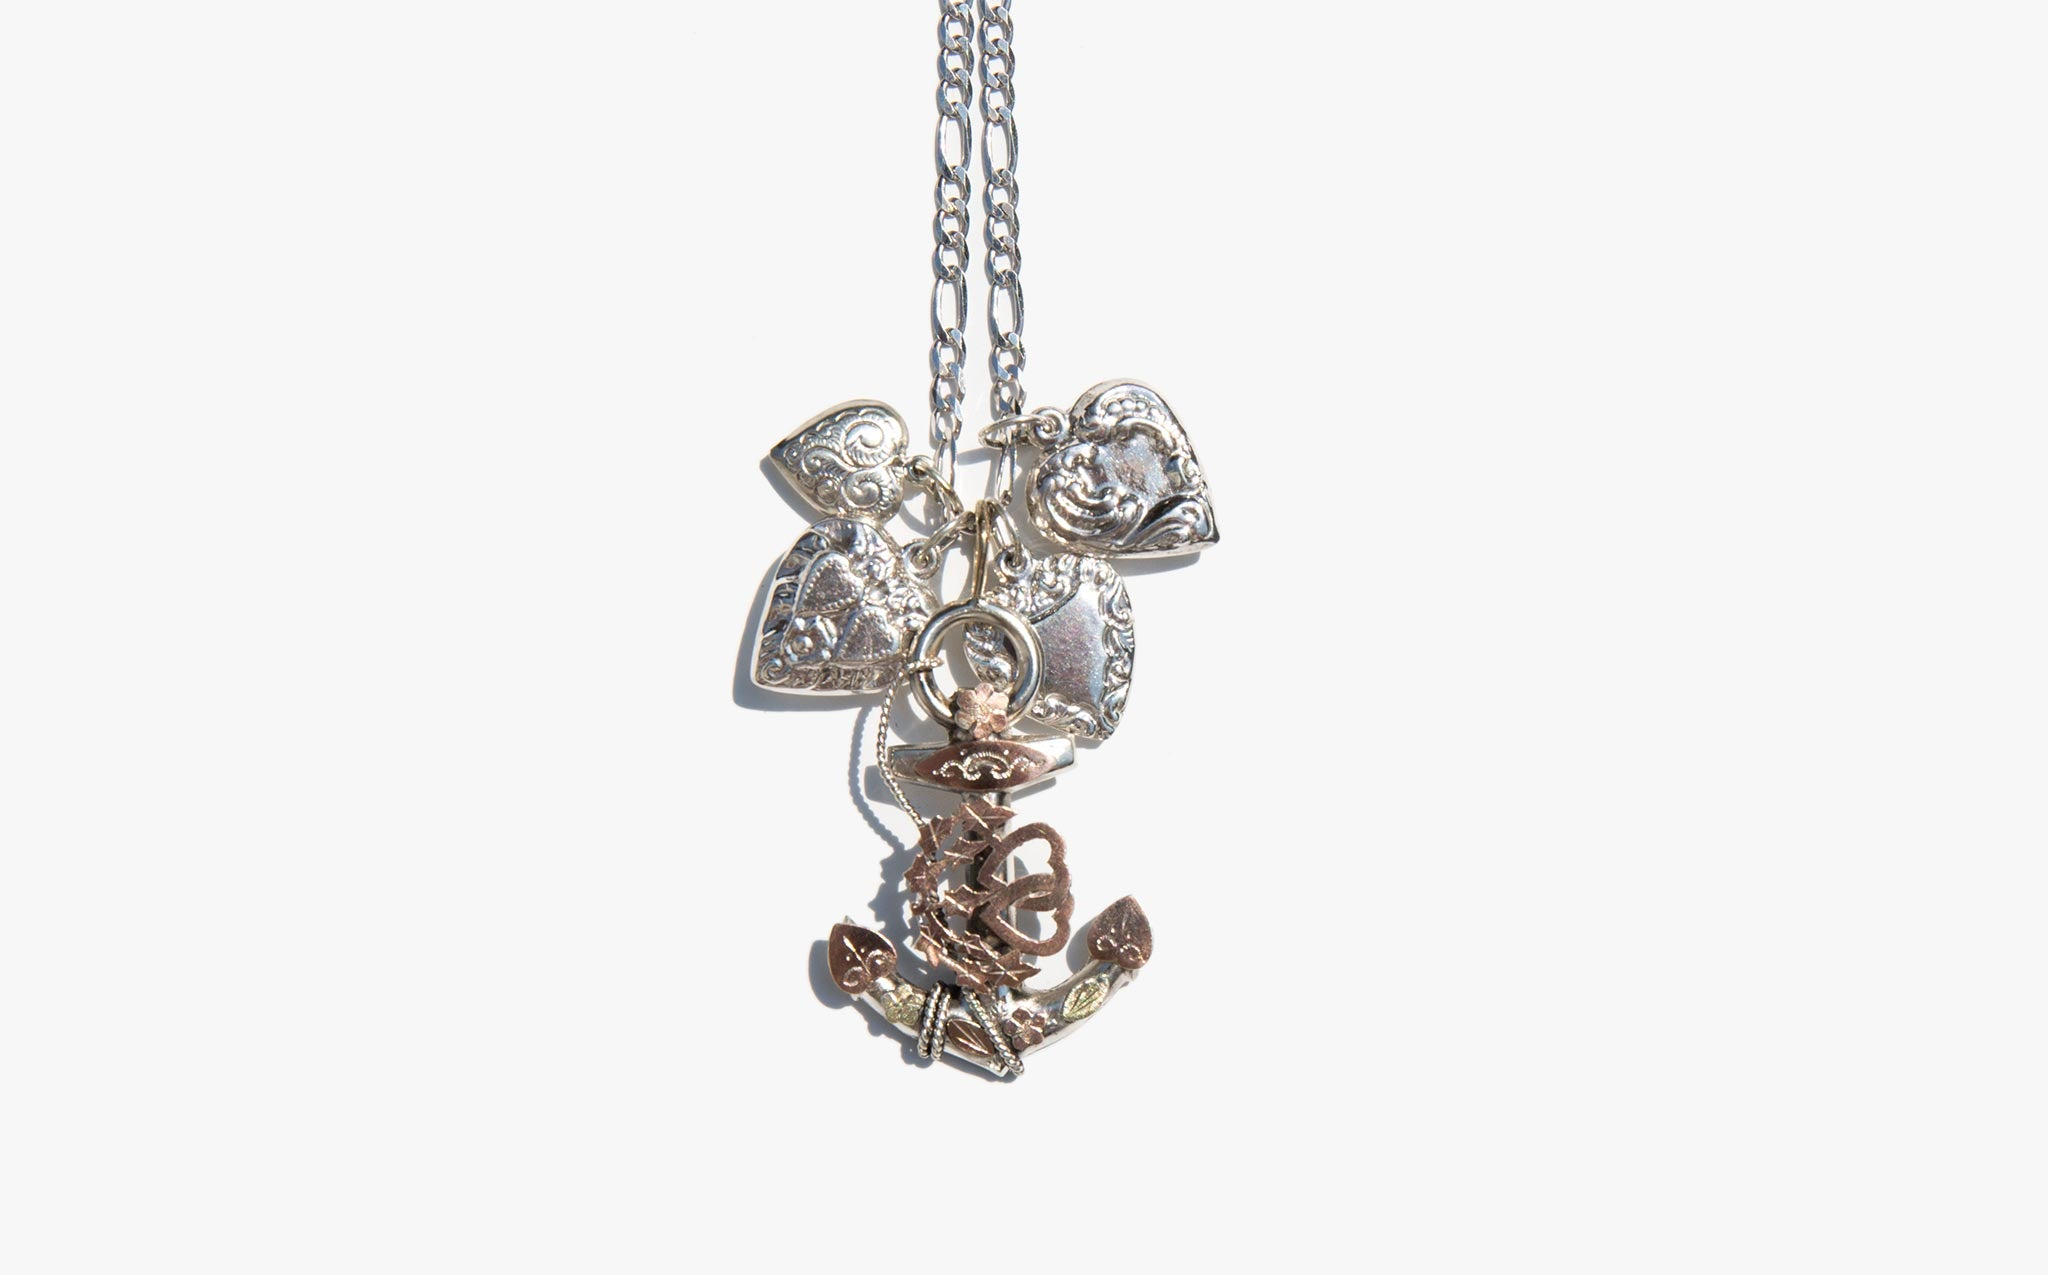 Antique Sweetheart Charm Necklace